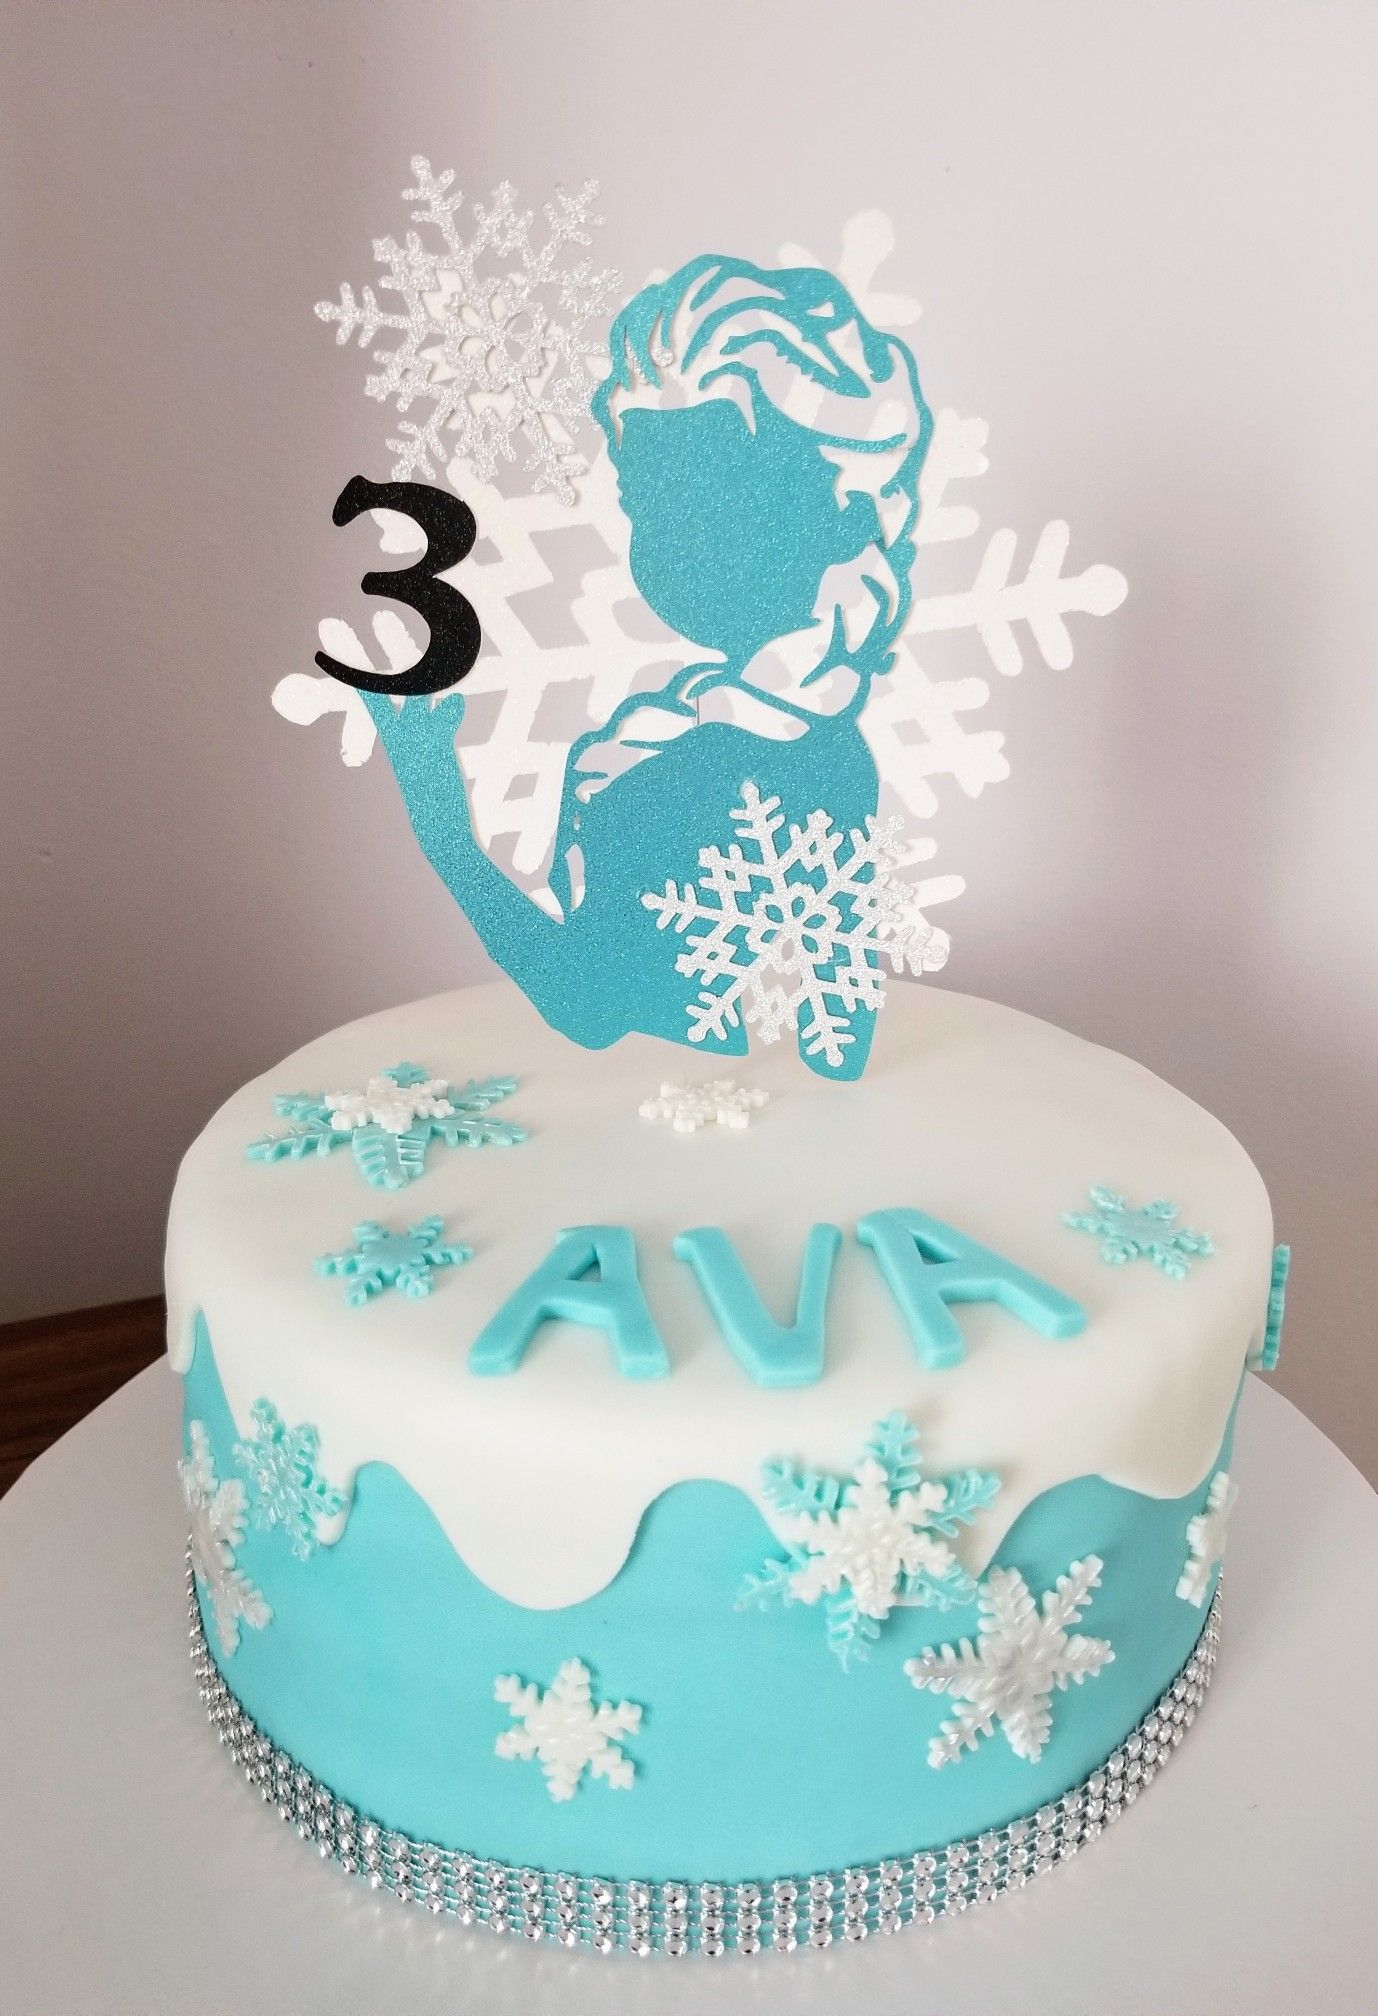 Wondrous Frozen Inspired Cake With Cricut Caketopper With Images Frozen Funny Birthday Cards Online Elaedamsfinfo